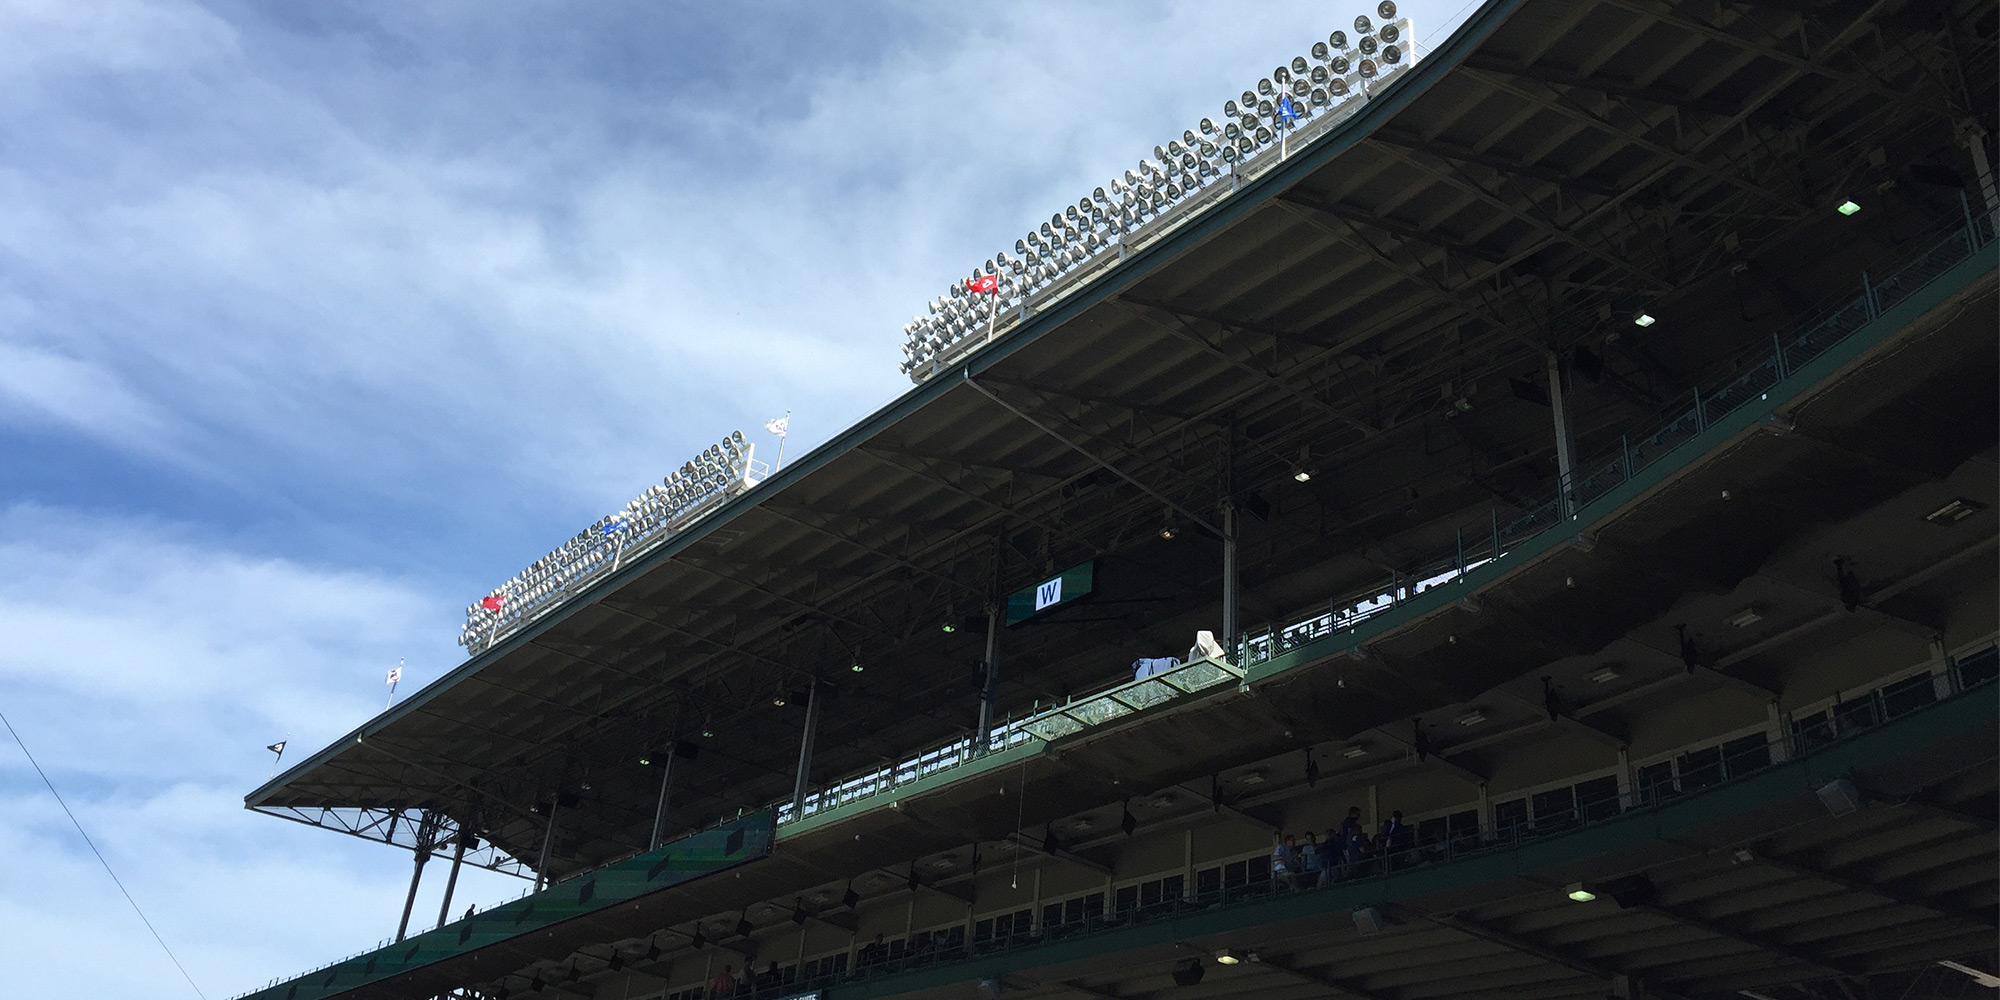 Picture of the roof and lights at Wrigley Field.